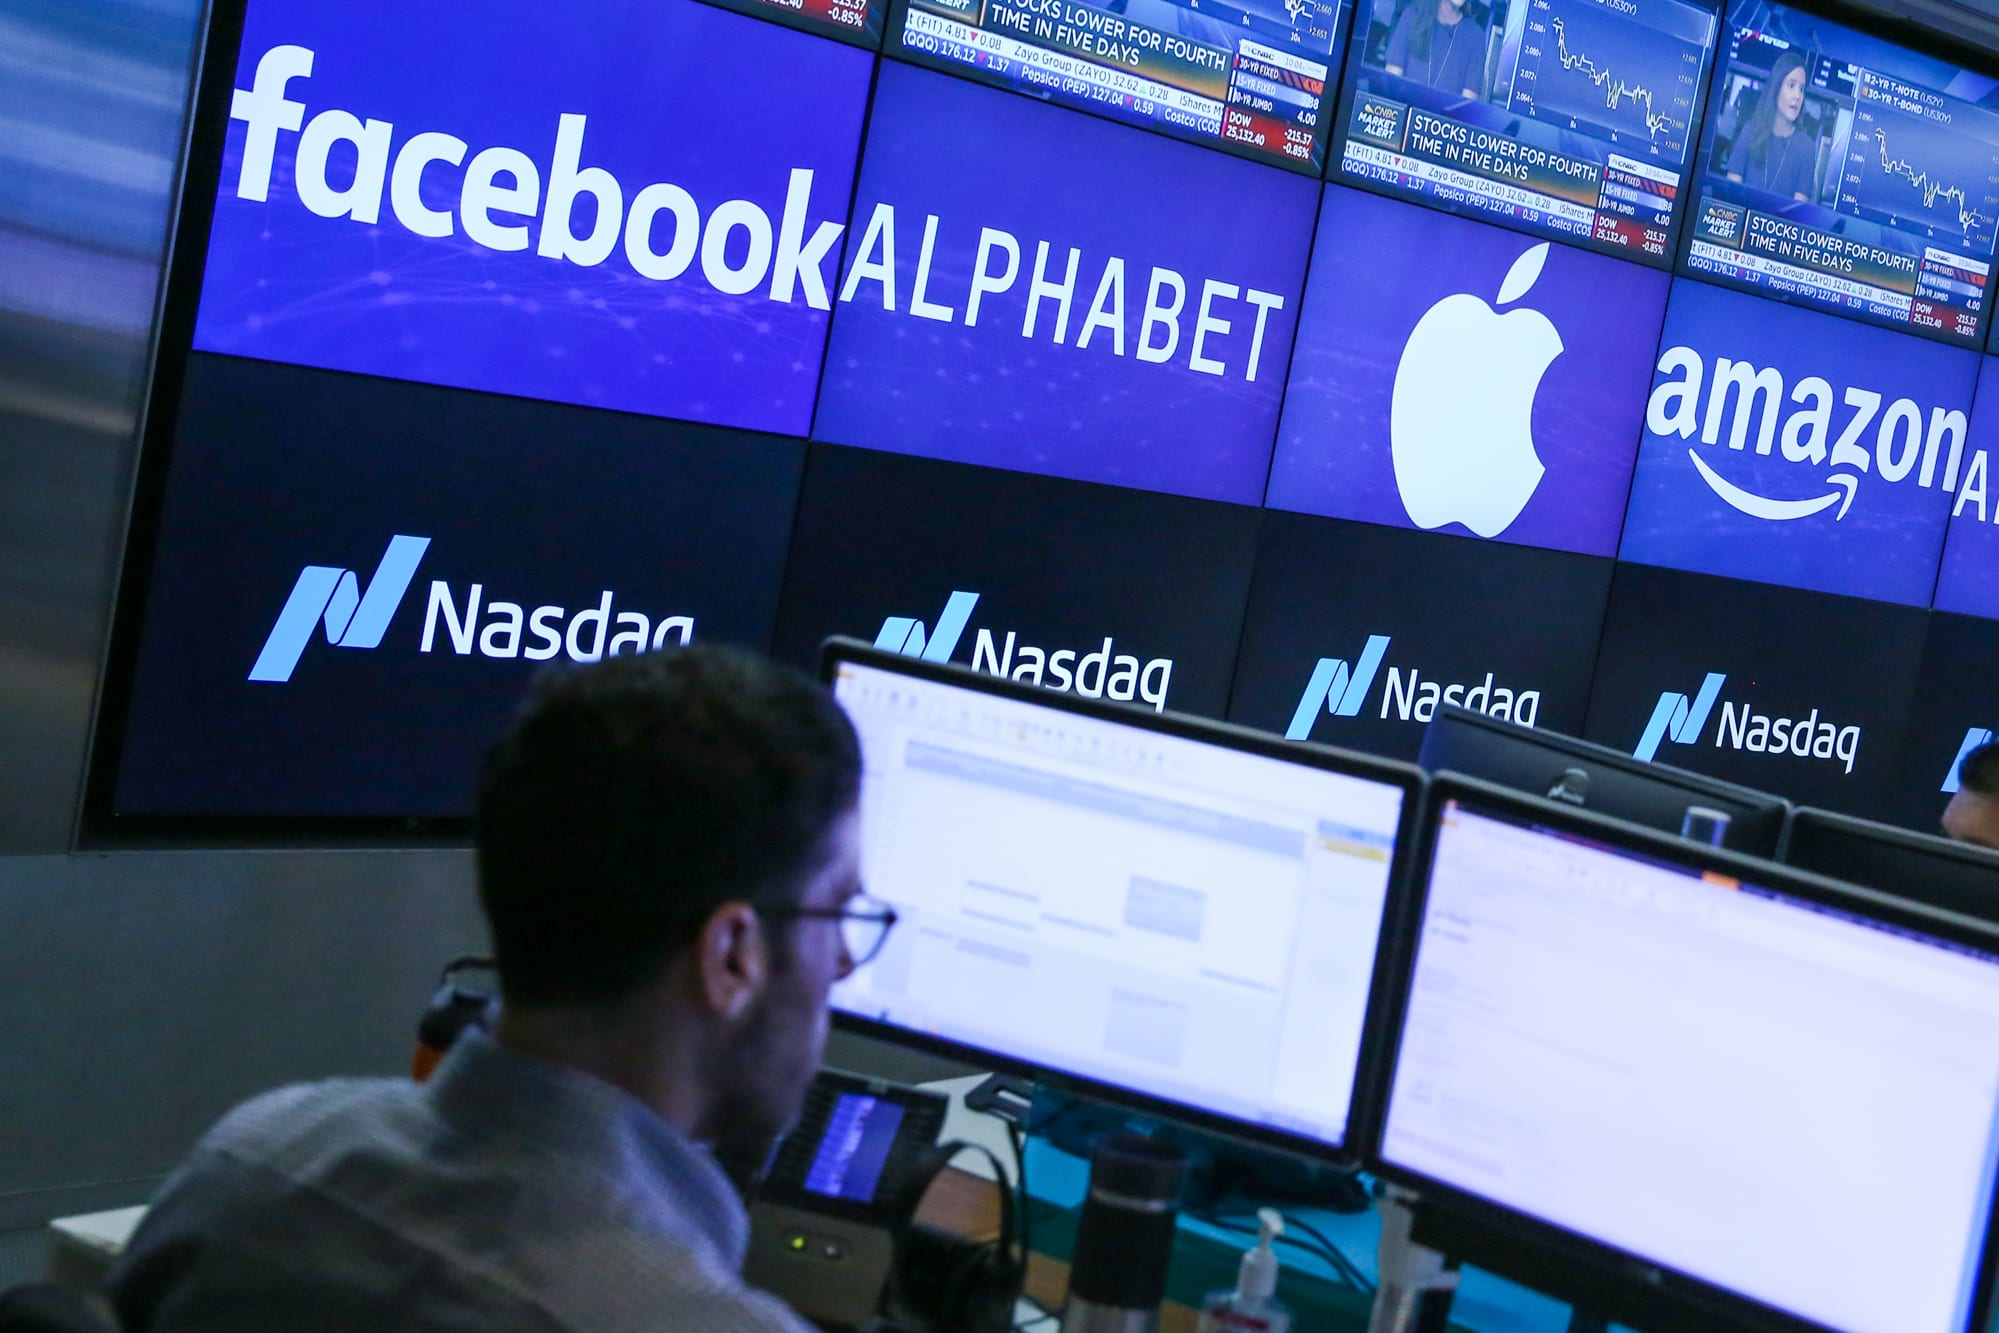 Tech giants now make up more than 20 percent of the value of the entire S&P 500